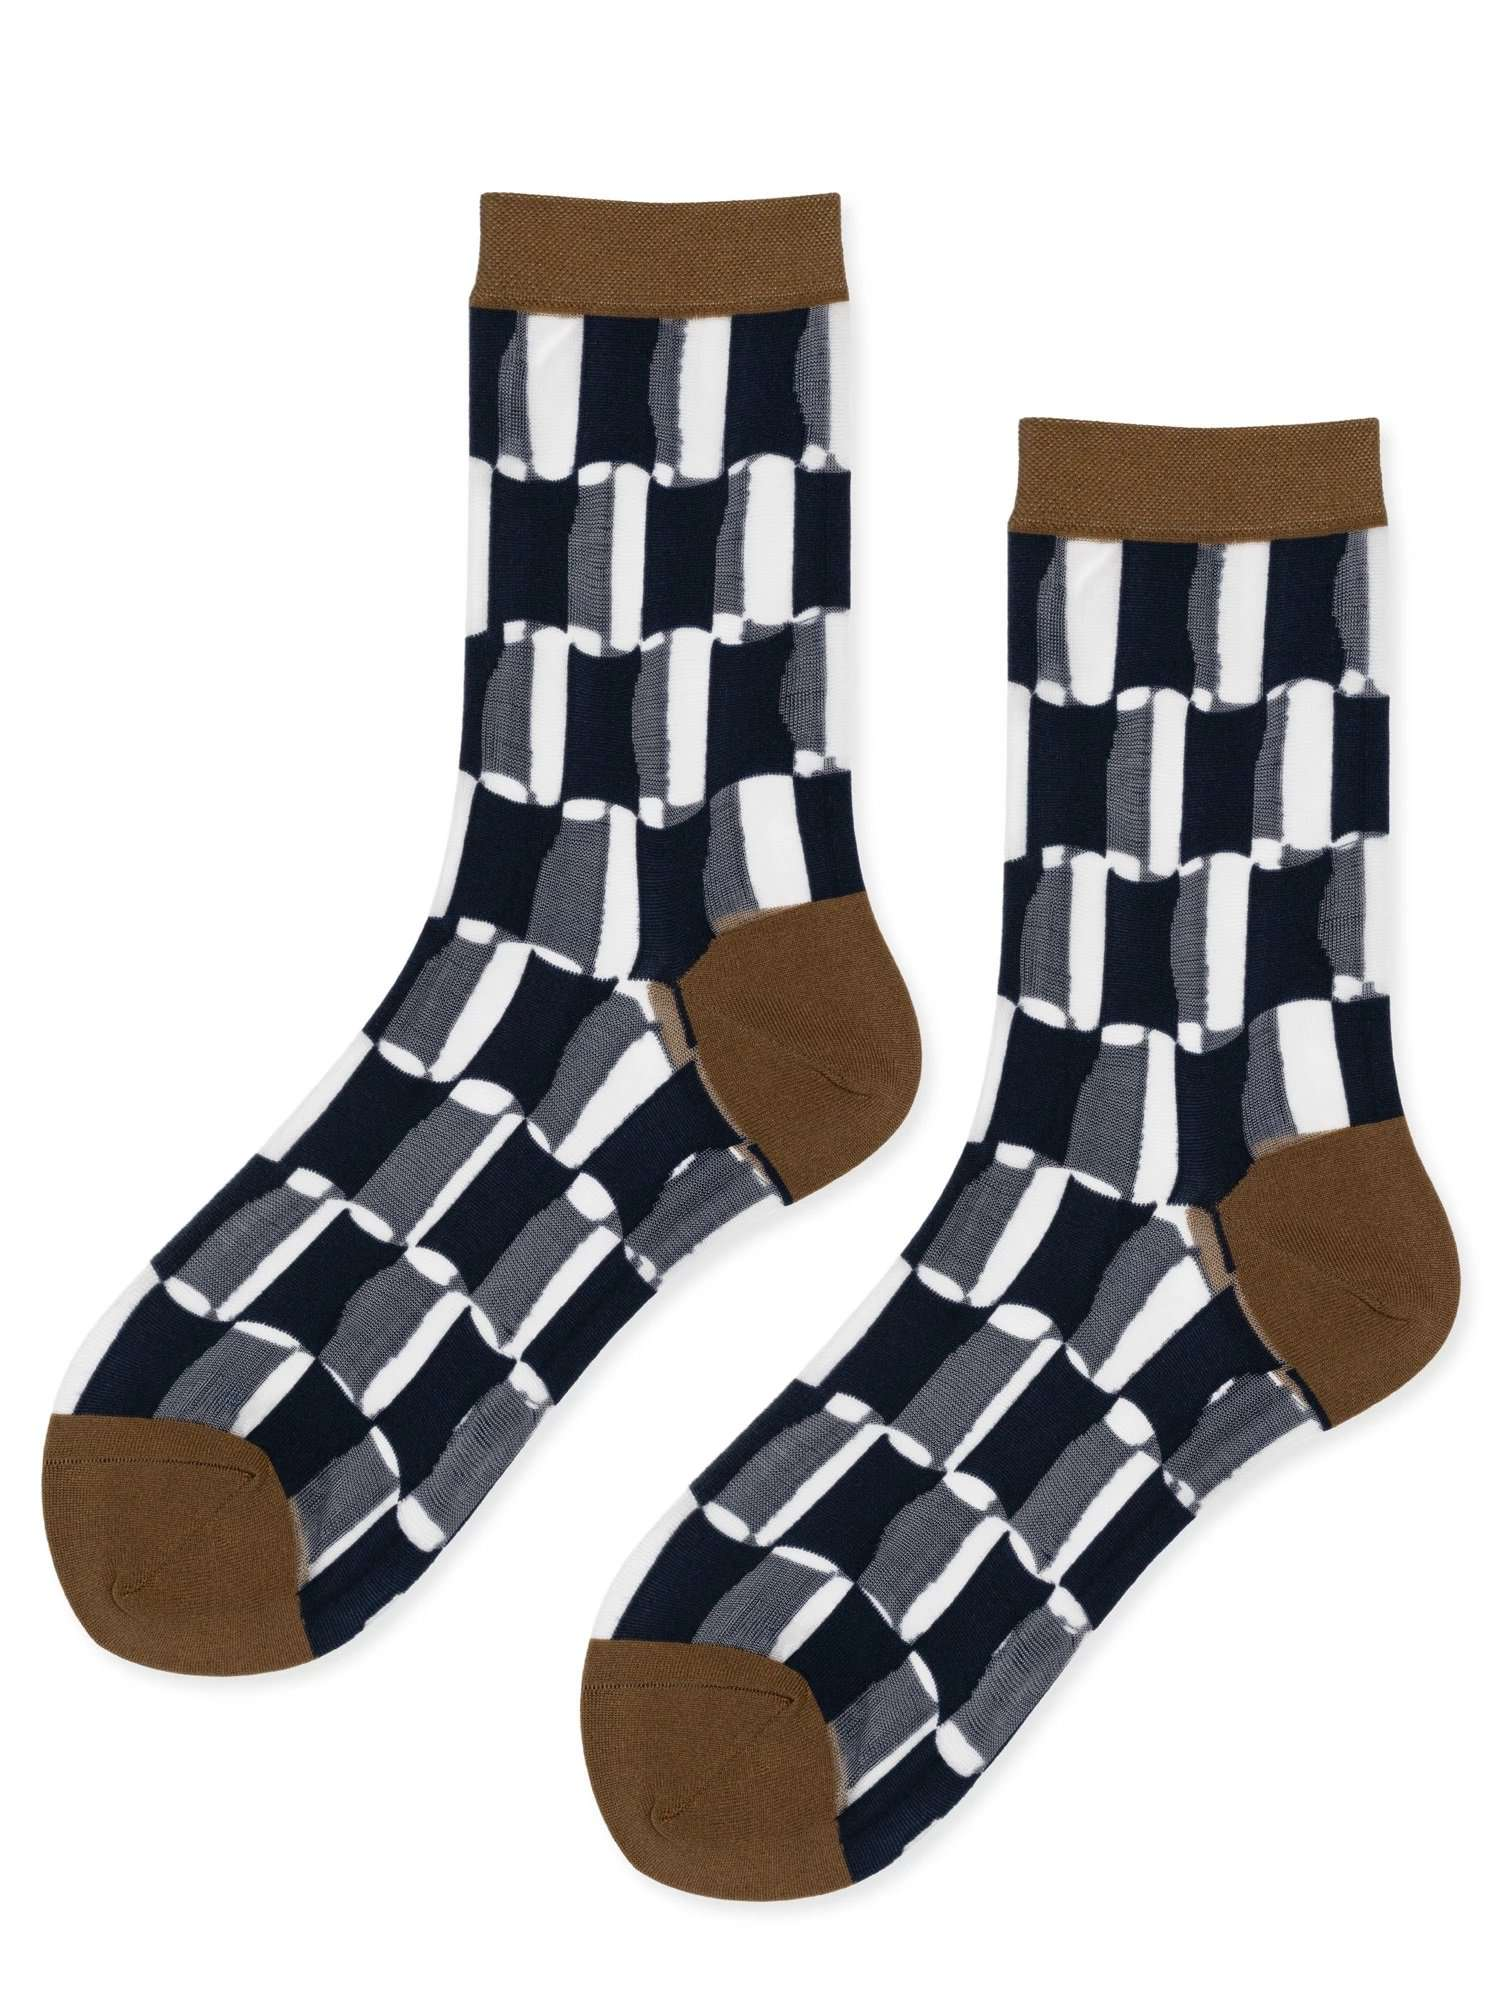 The Petit Chucks Sheer Crew Socks